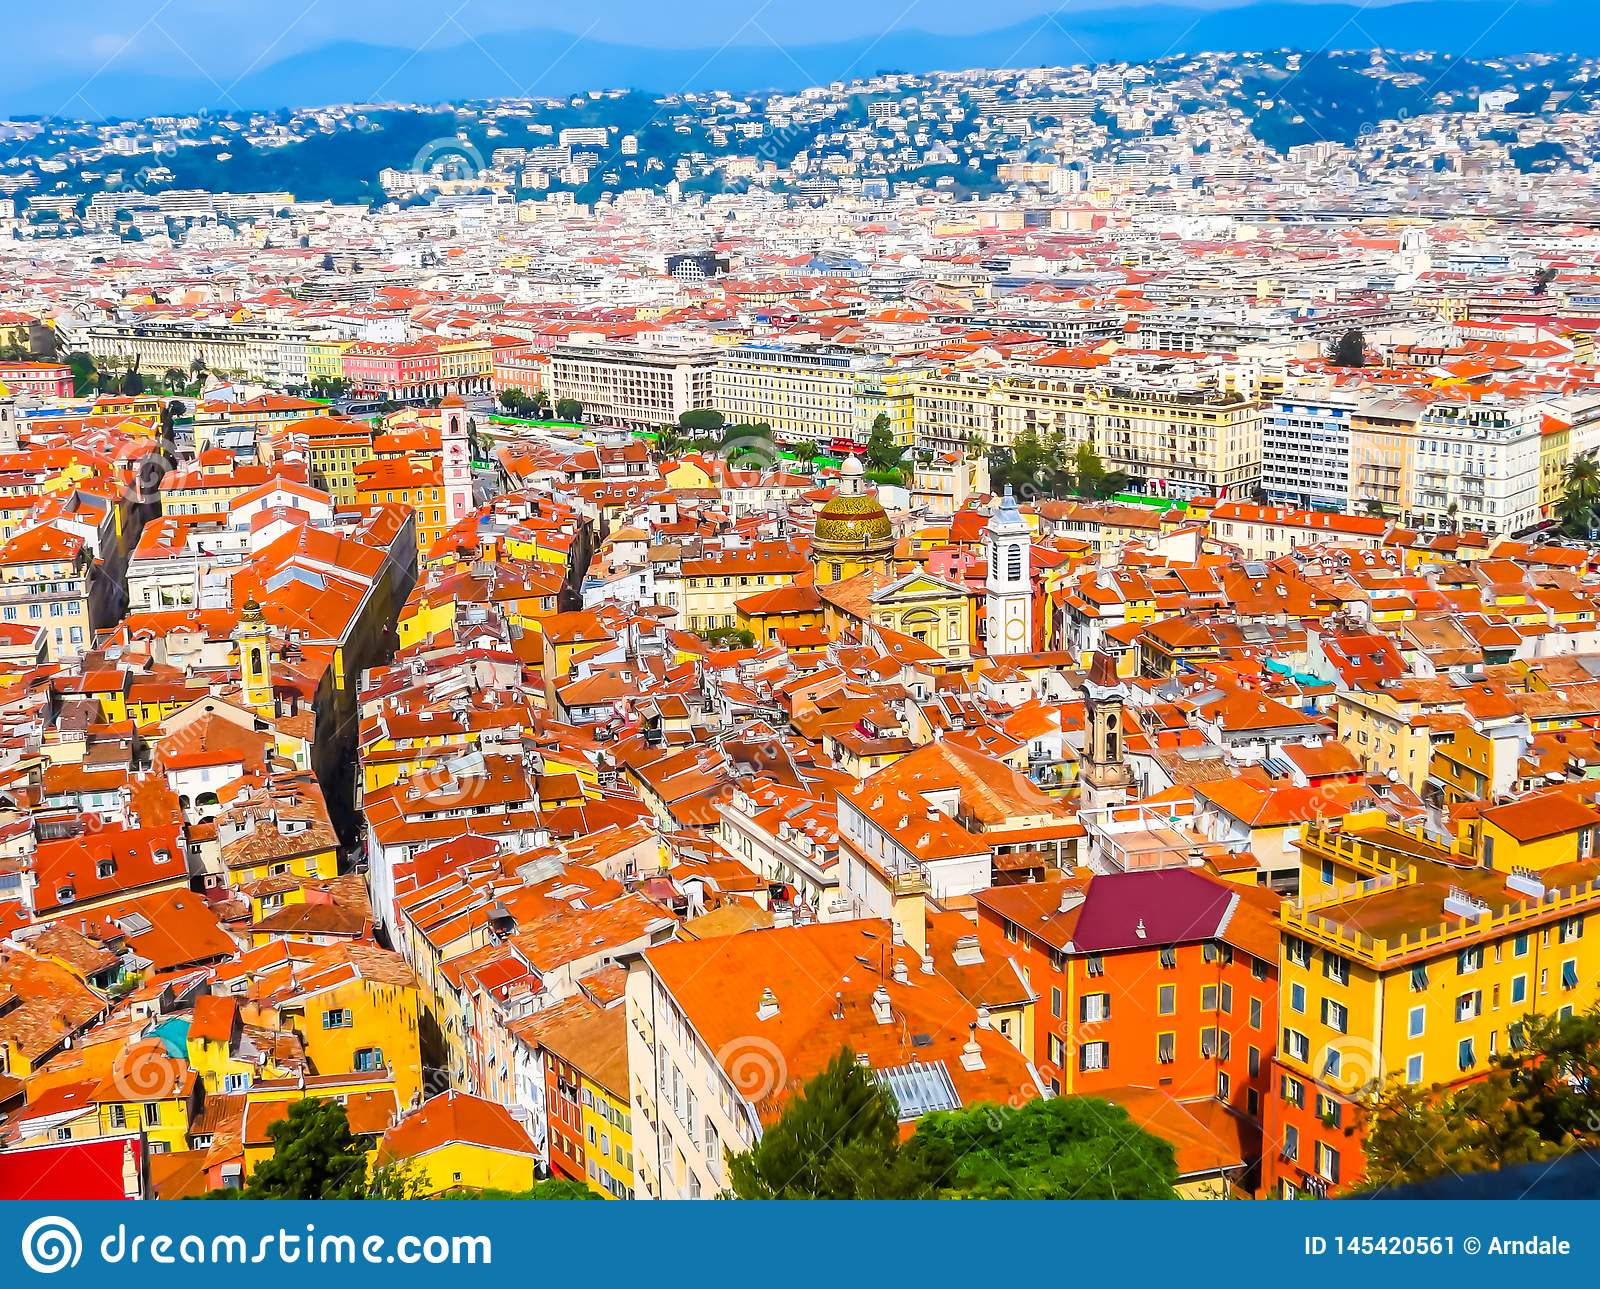 Aerial view of the Nice, France